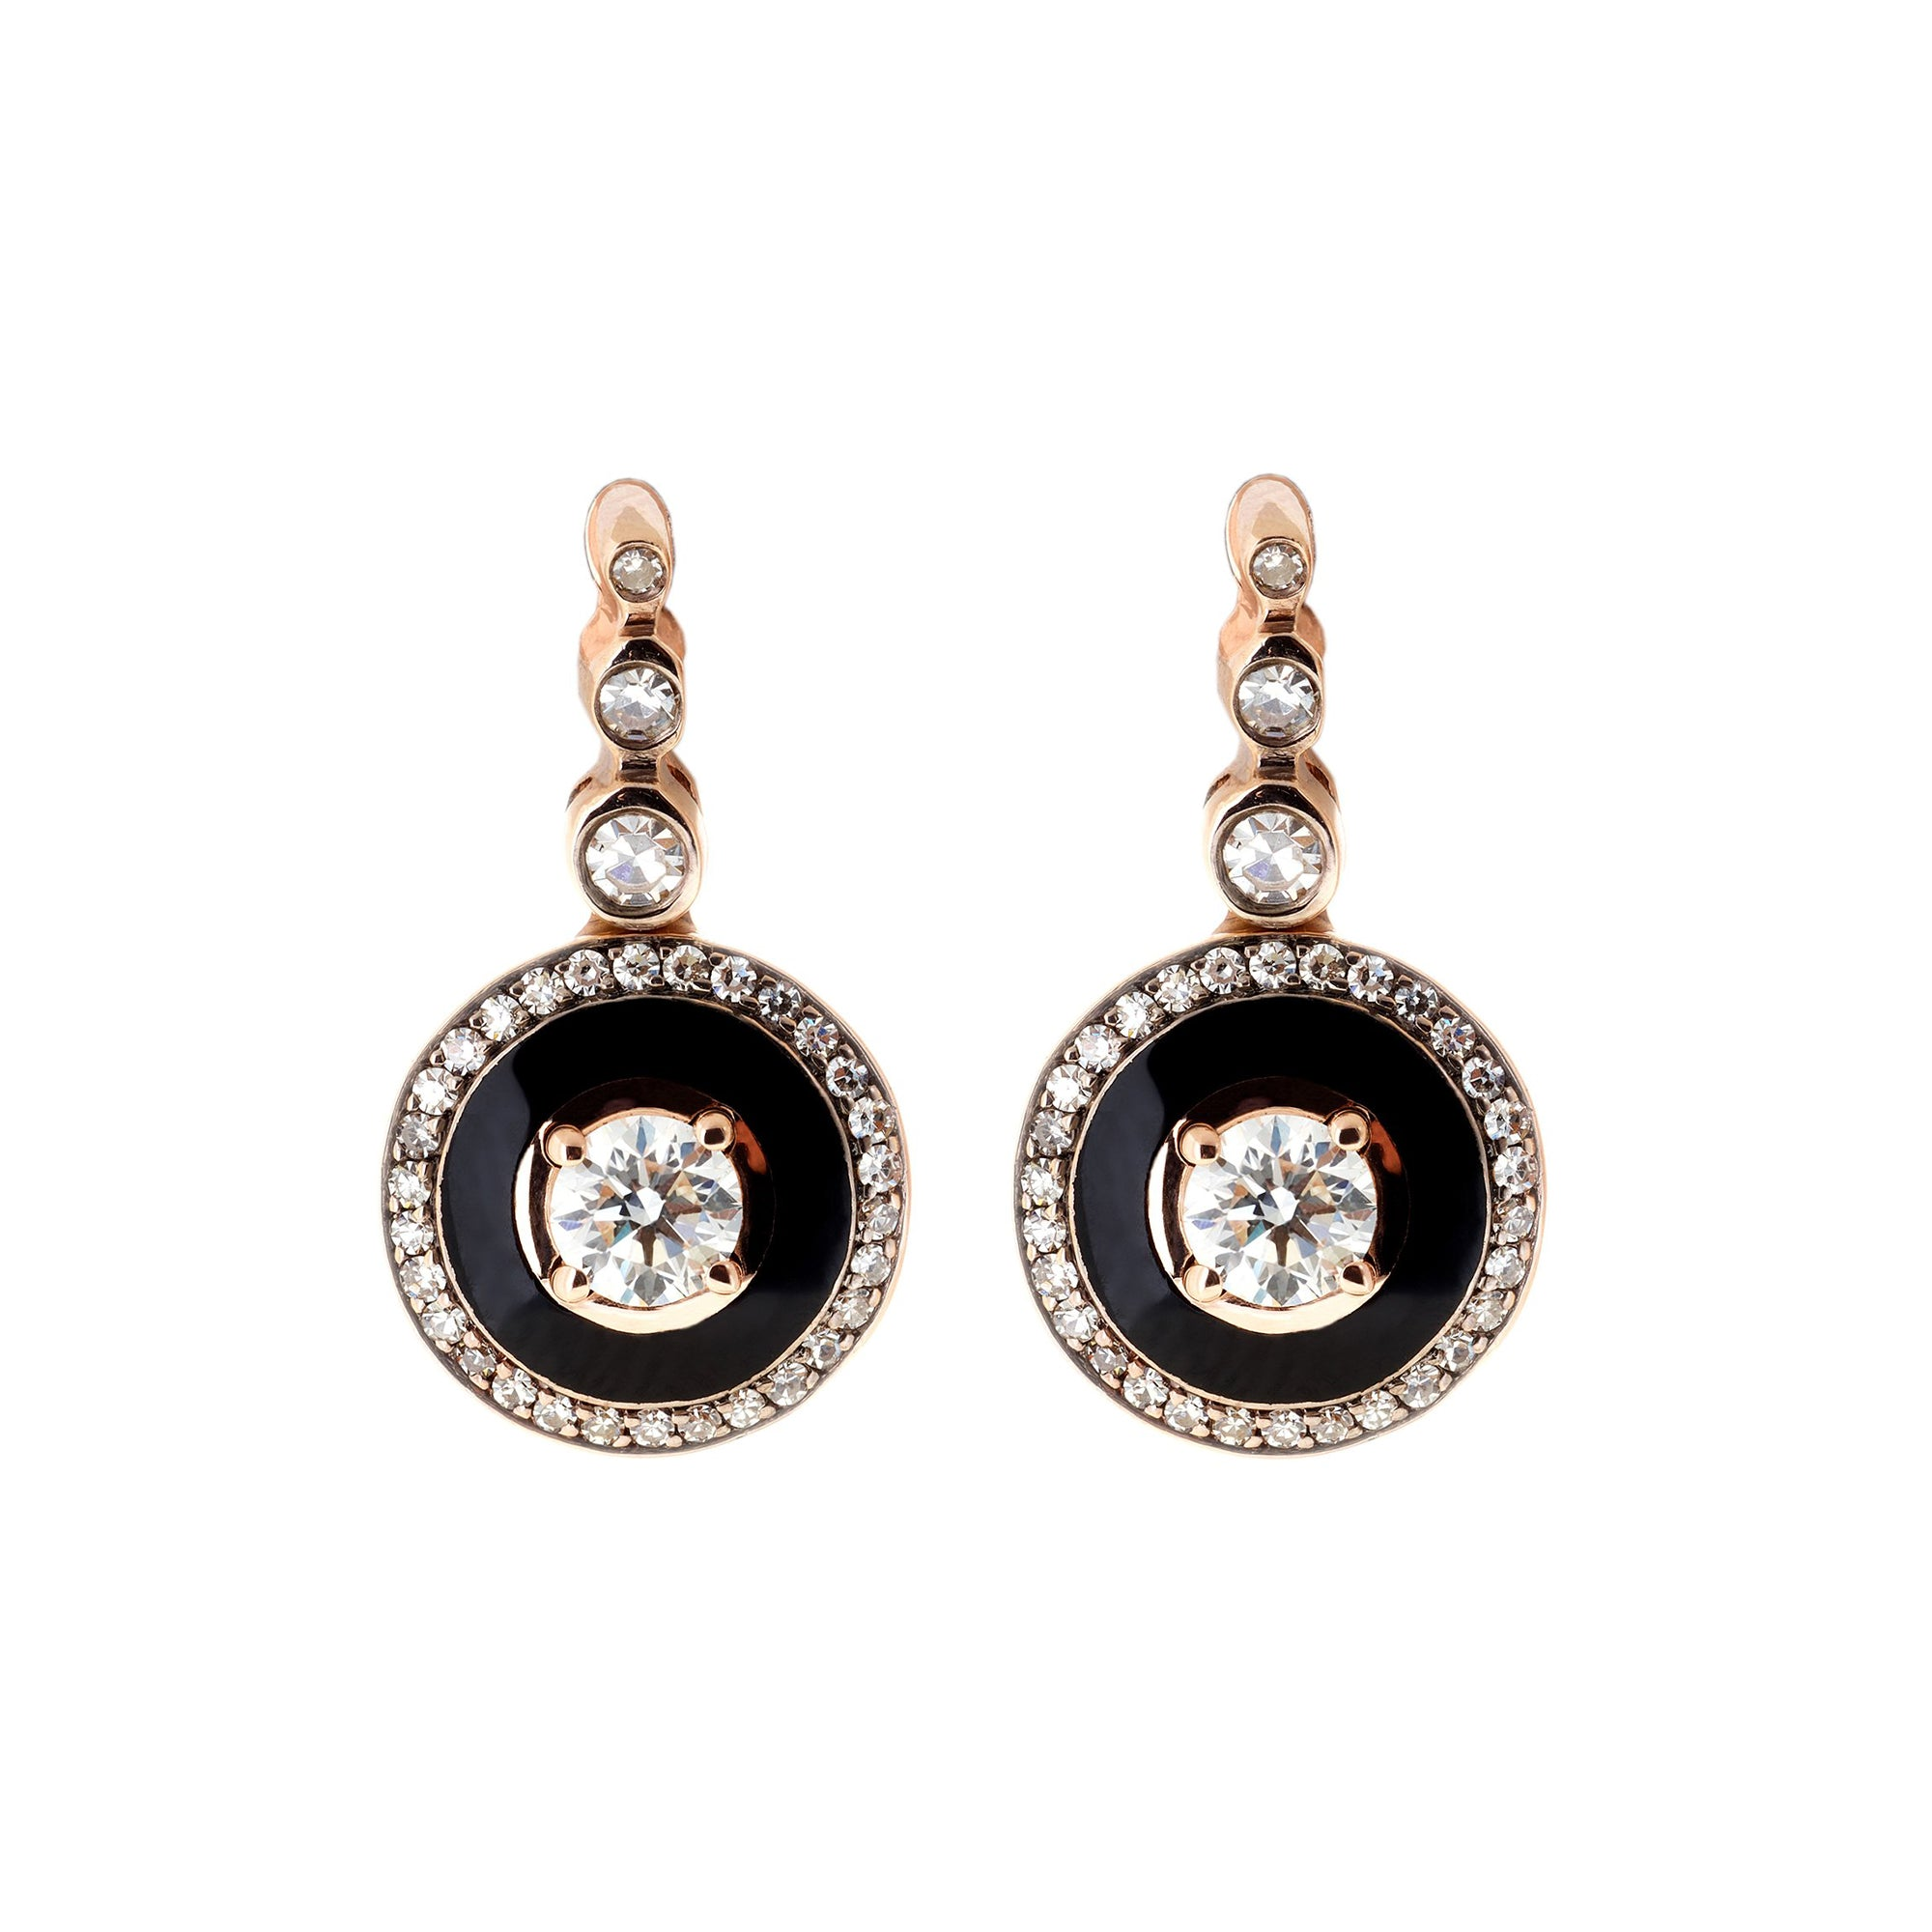 Diamond and Black Enamel Earrings by Selim Mouzannar for Broken English Jewelry